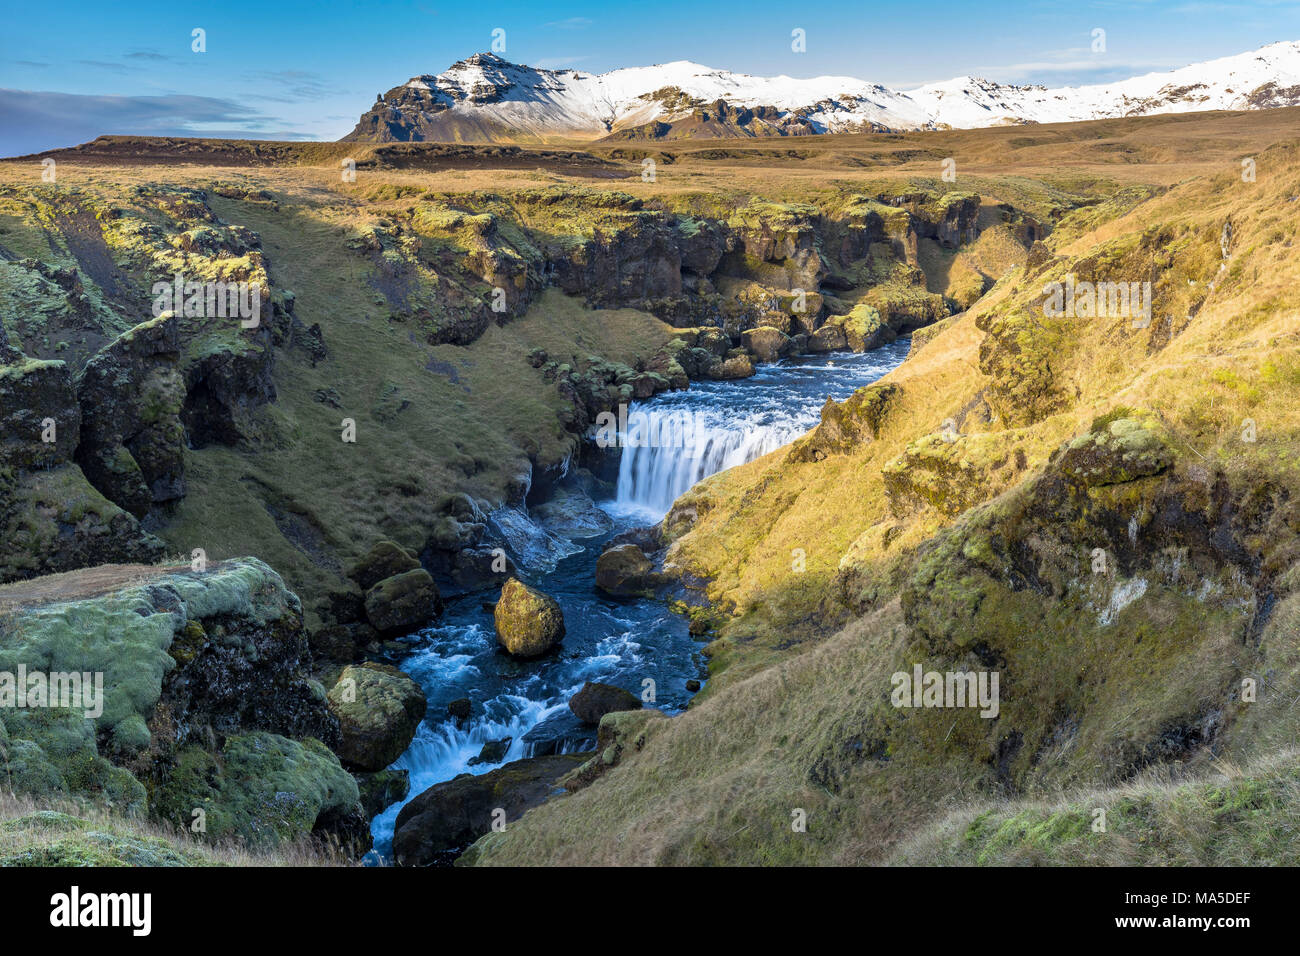 Europe, Northern Europe, Iceland, Skógar, Highlands, view to the impressive landscape on the Fimmvörduhals trail - Stock Image